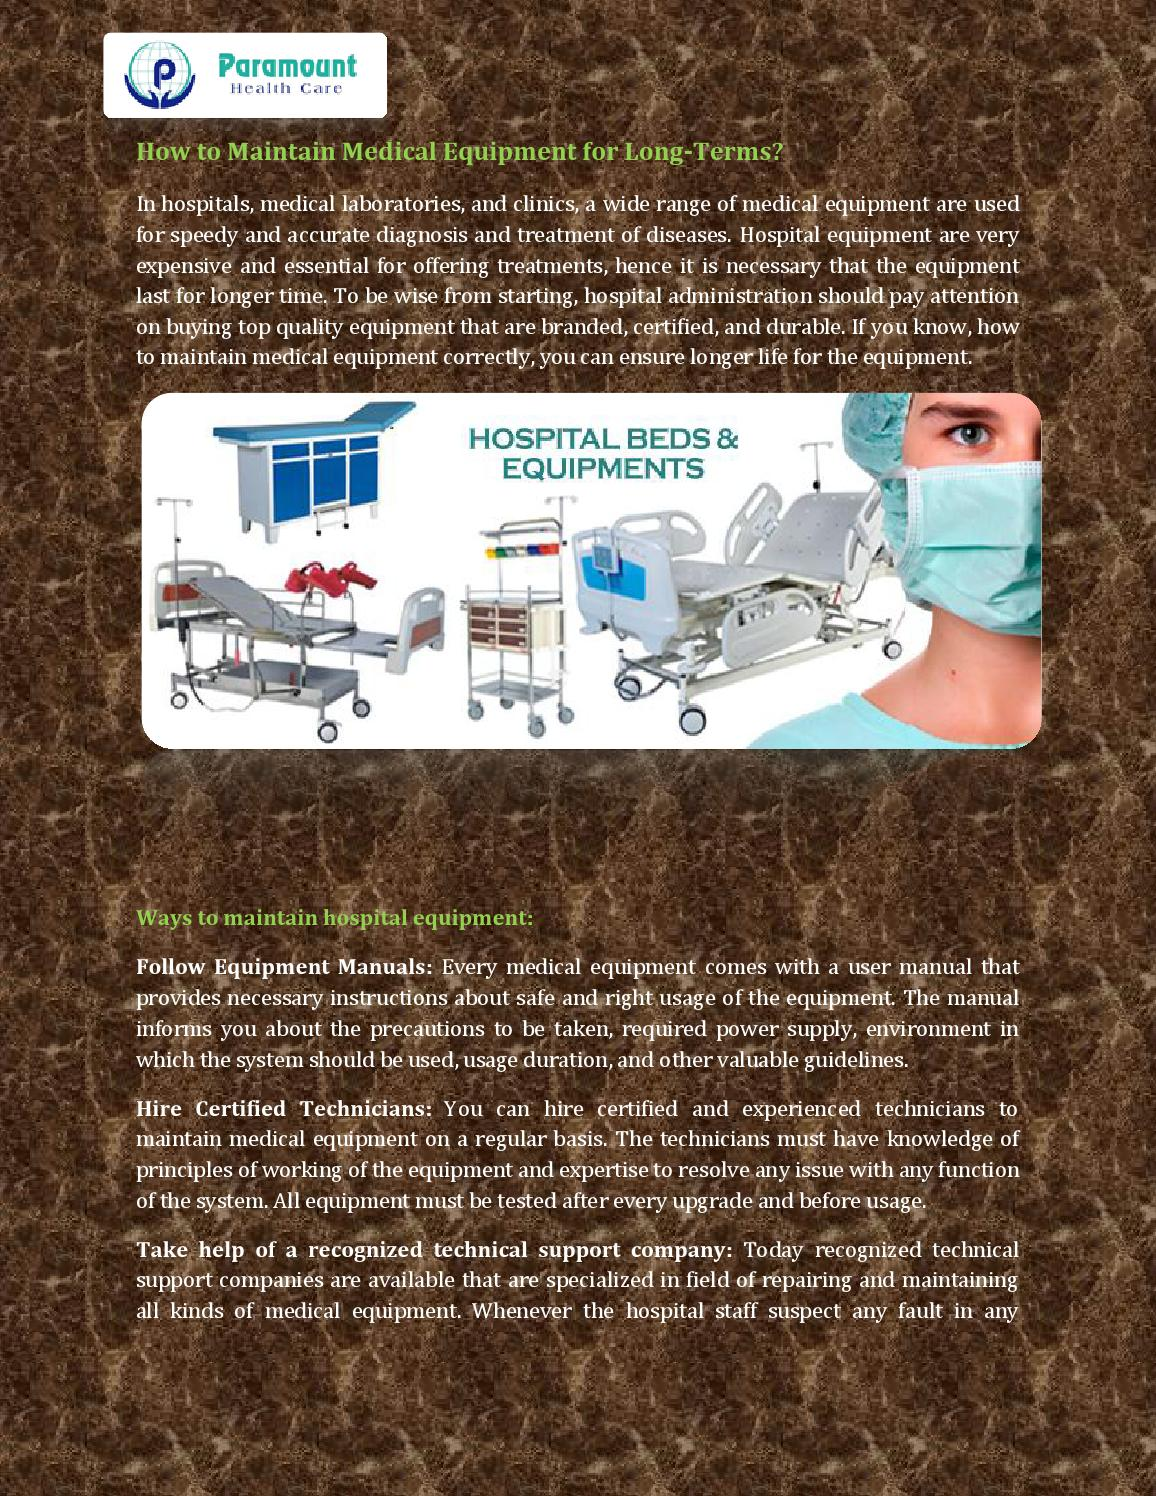 How to maintain medical equipment for long terms